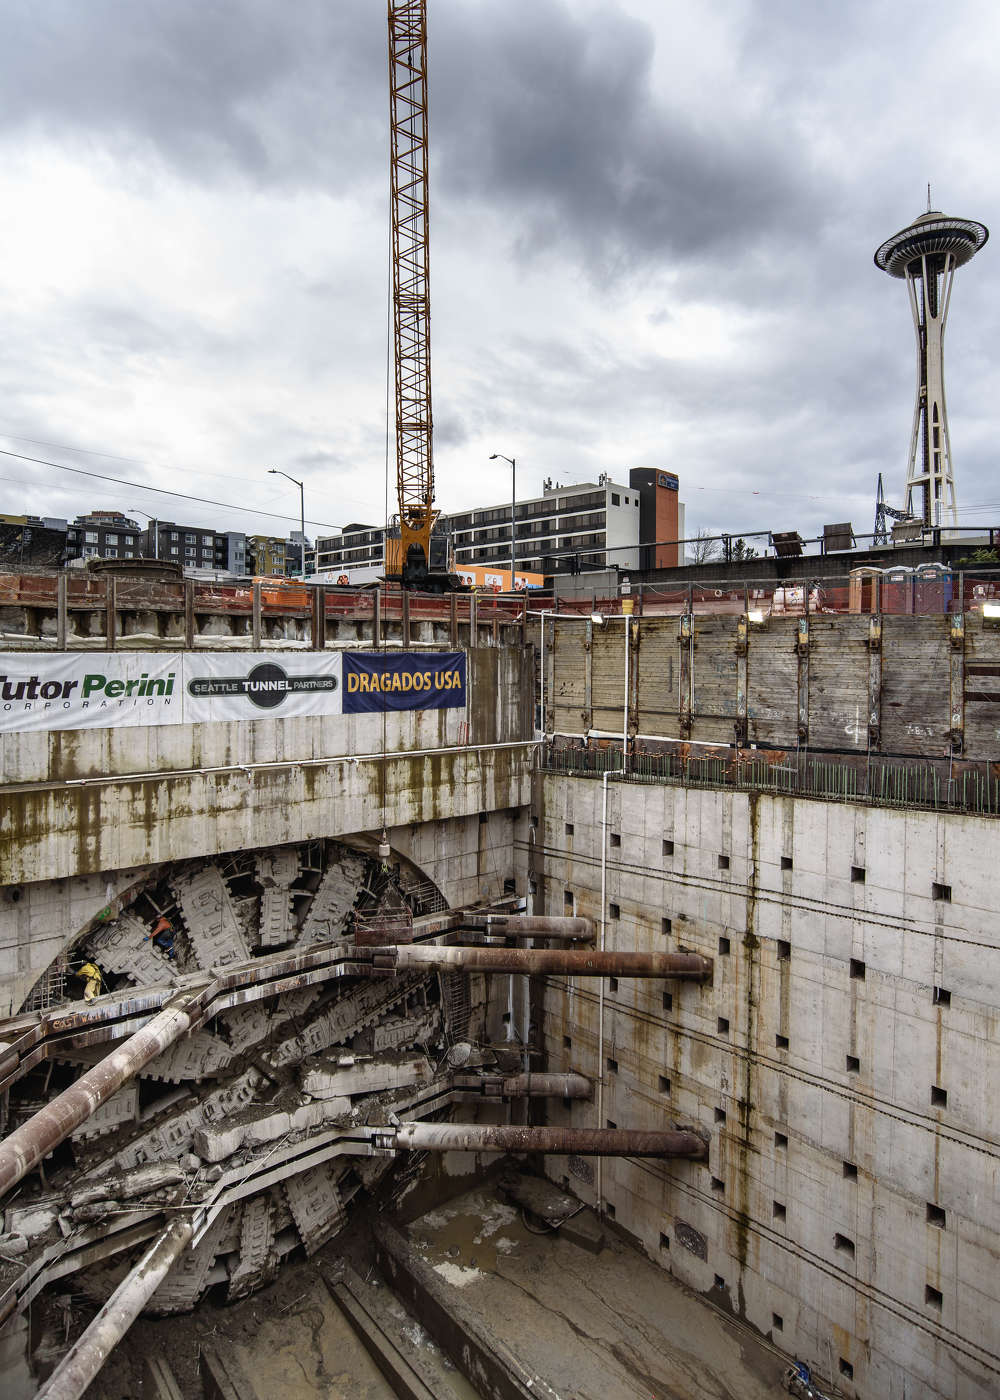 A look at Bertha, the SR 99 tunneling machine, in the pit near the Space Needle where she ended her 9,270-ft. journey beneath Seattle. Crews can be seen cleaning the massive machine's cutterhead. (WSDOT photo)